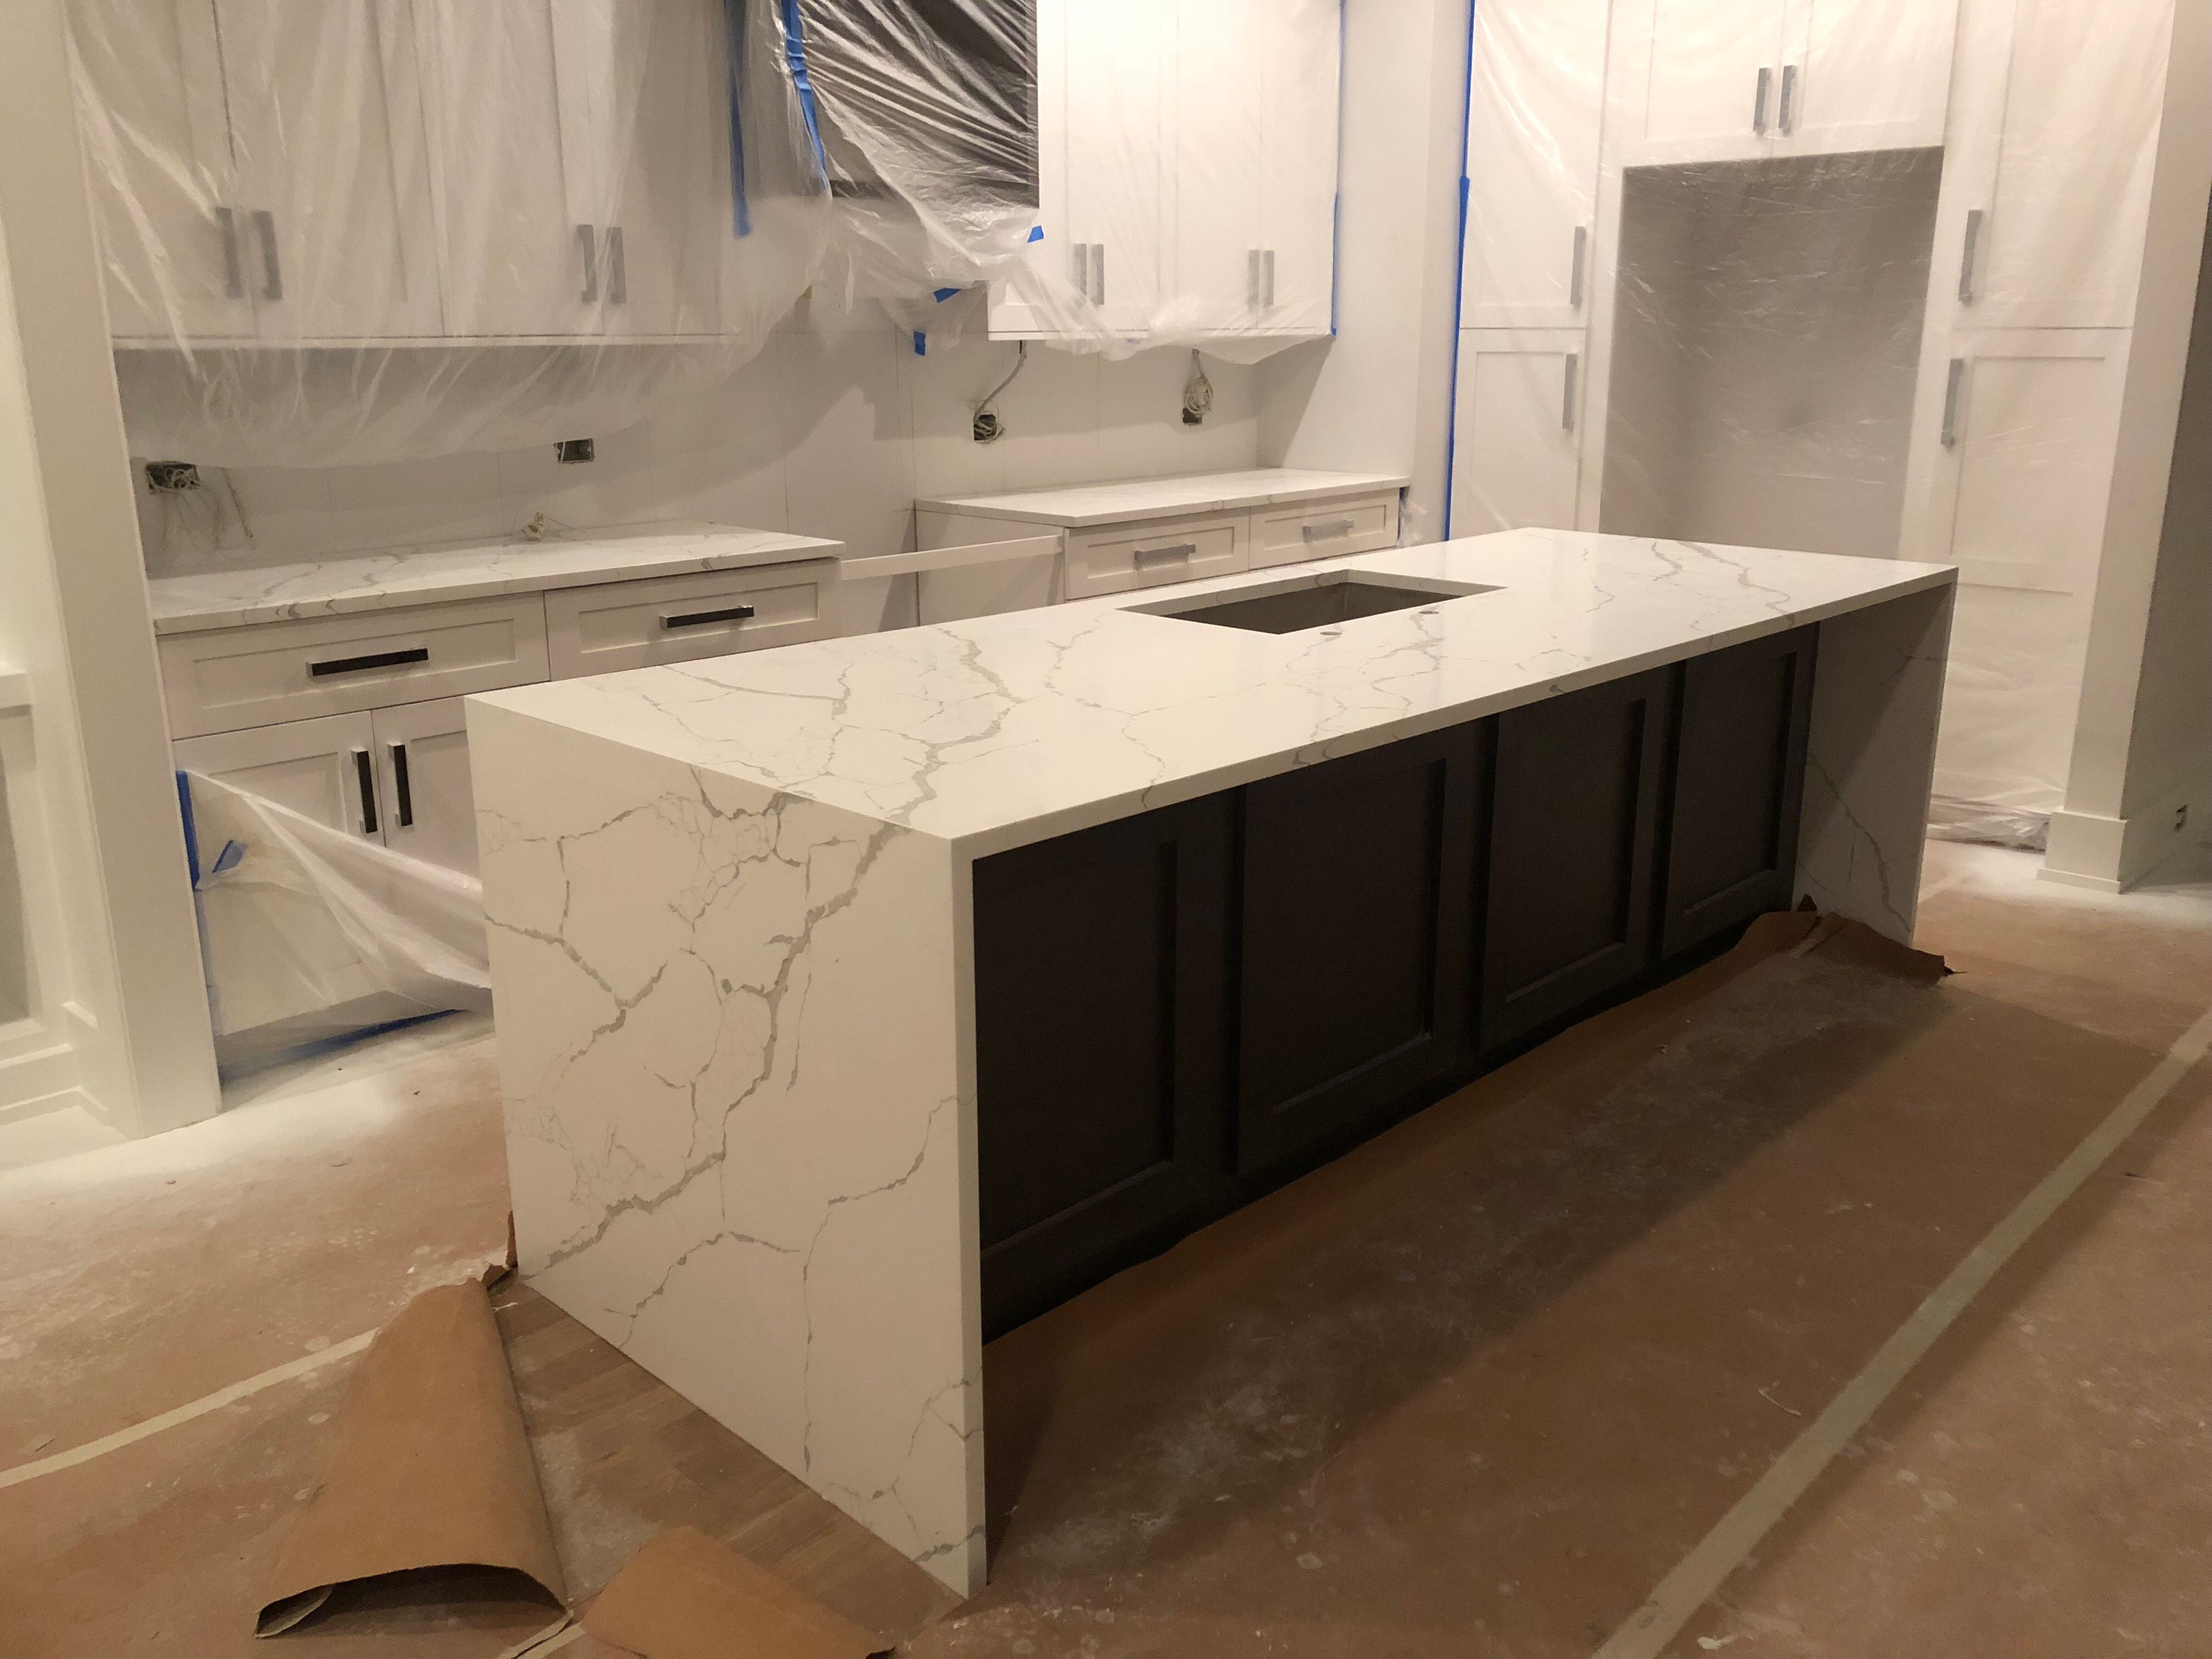 Calacatta Laza Quartz From Msi With Waterfall Panels And Vein